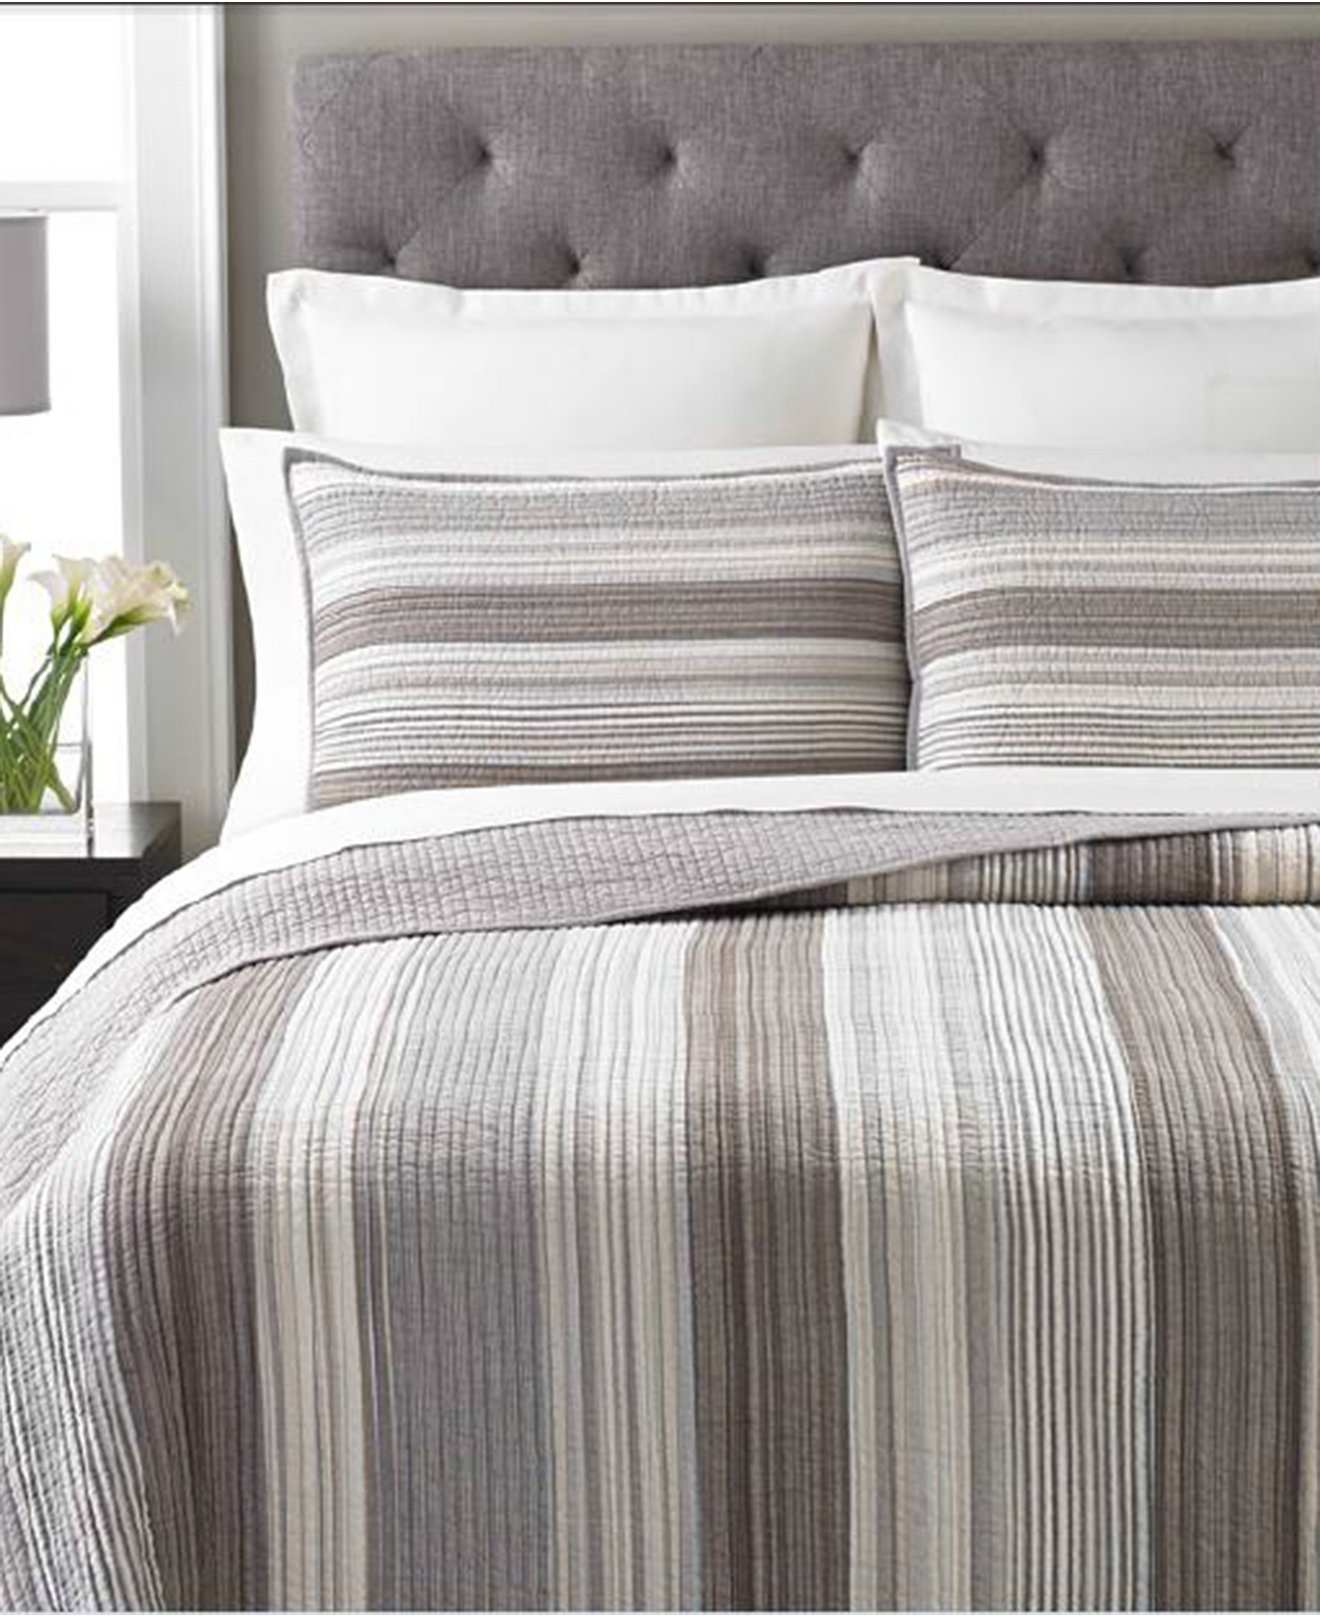 Martha Stewart Collection Quilts and Bedspreads   Macy s Martha Stewart Collection Garrison Stripe Neutral Quilts. Bedroom Quilts. Home Design Ideas